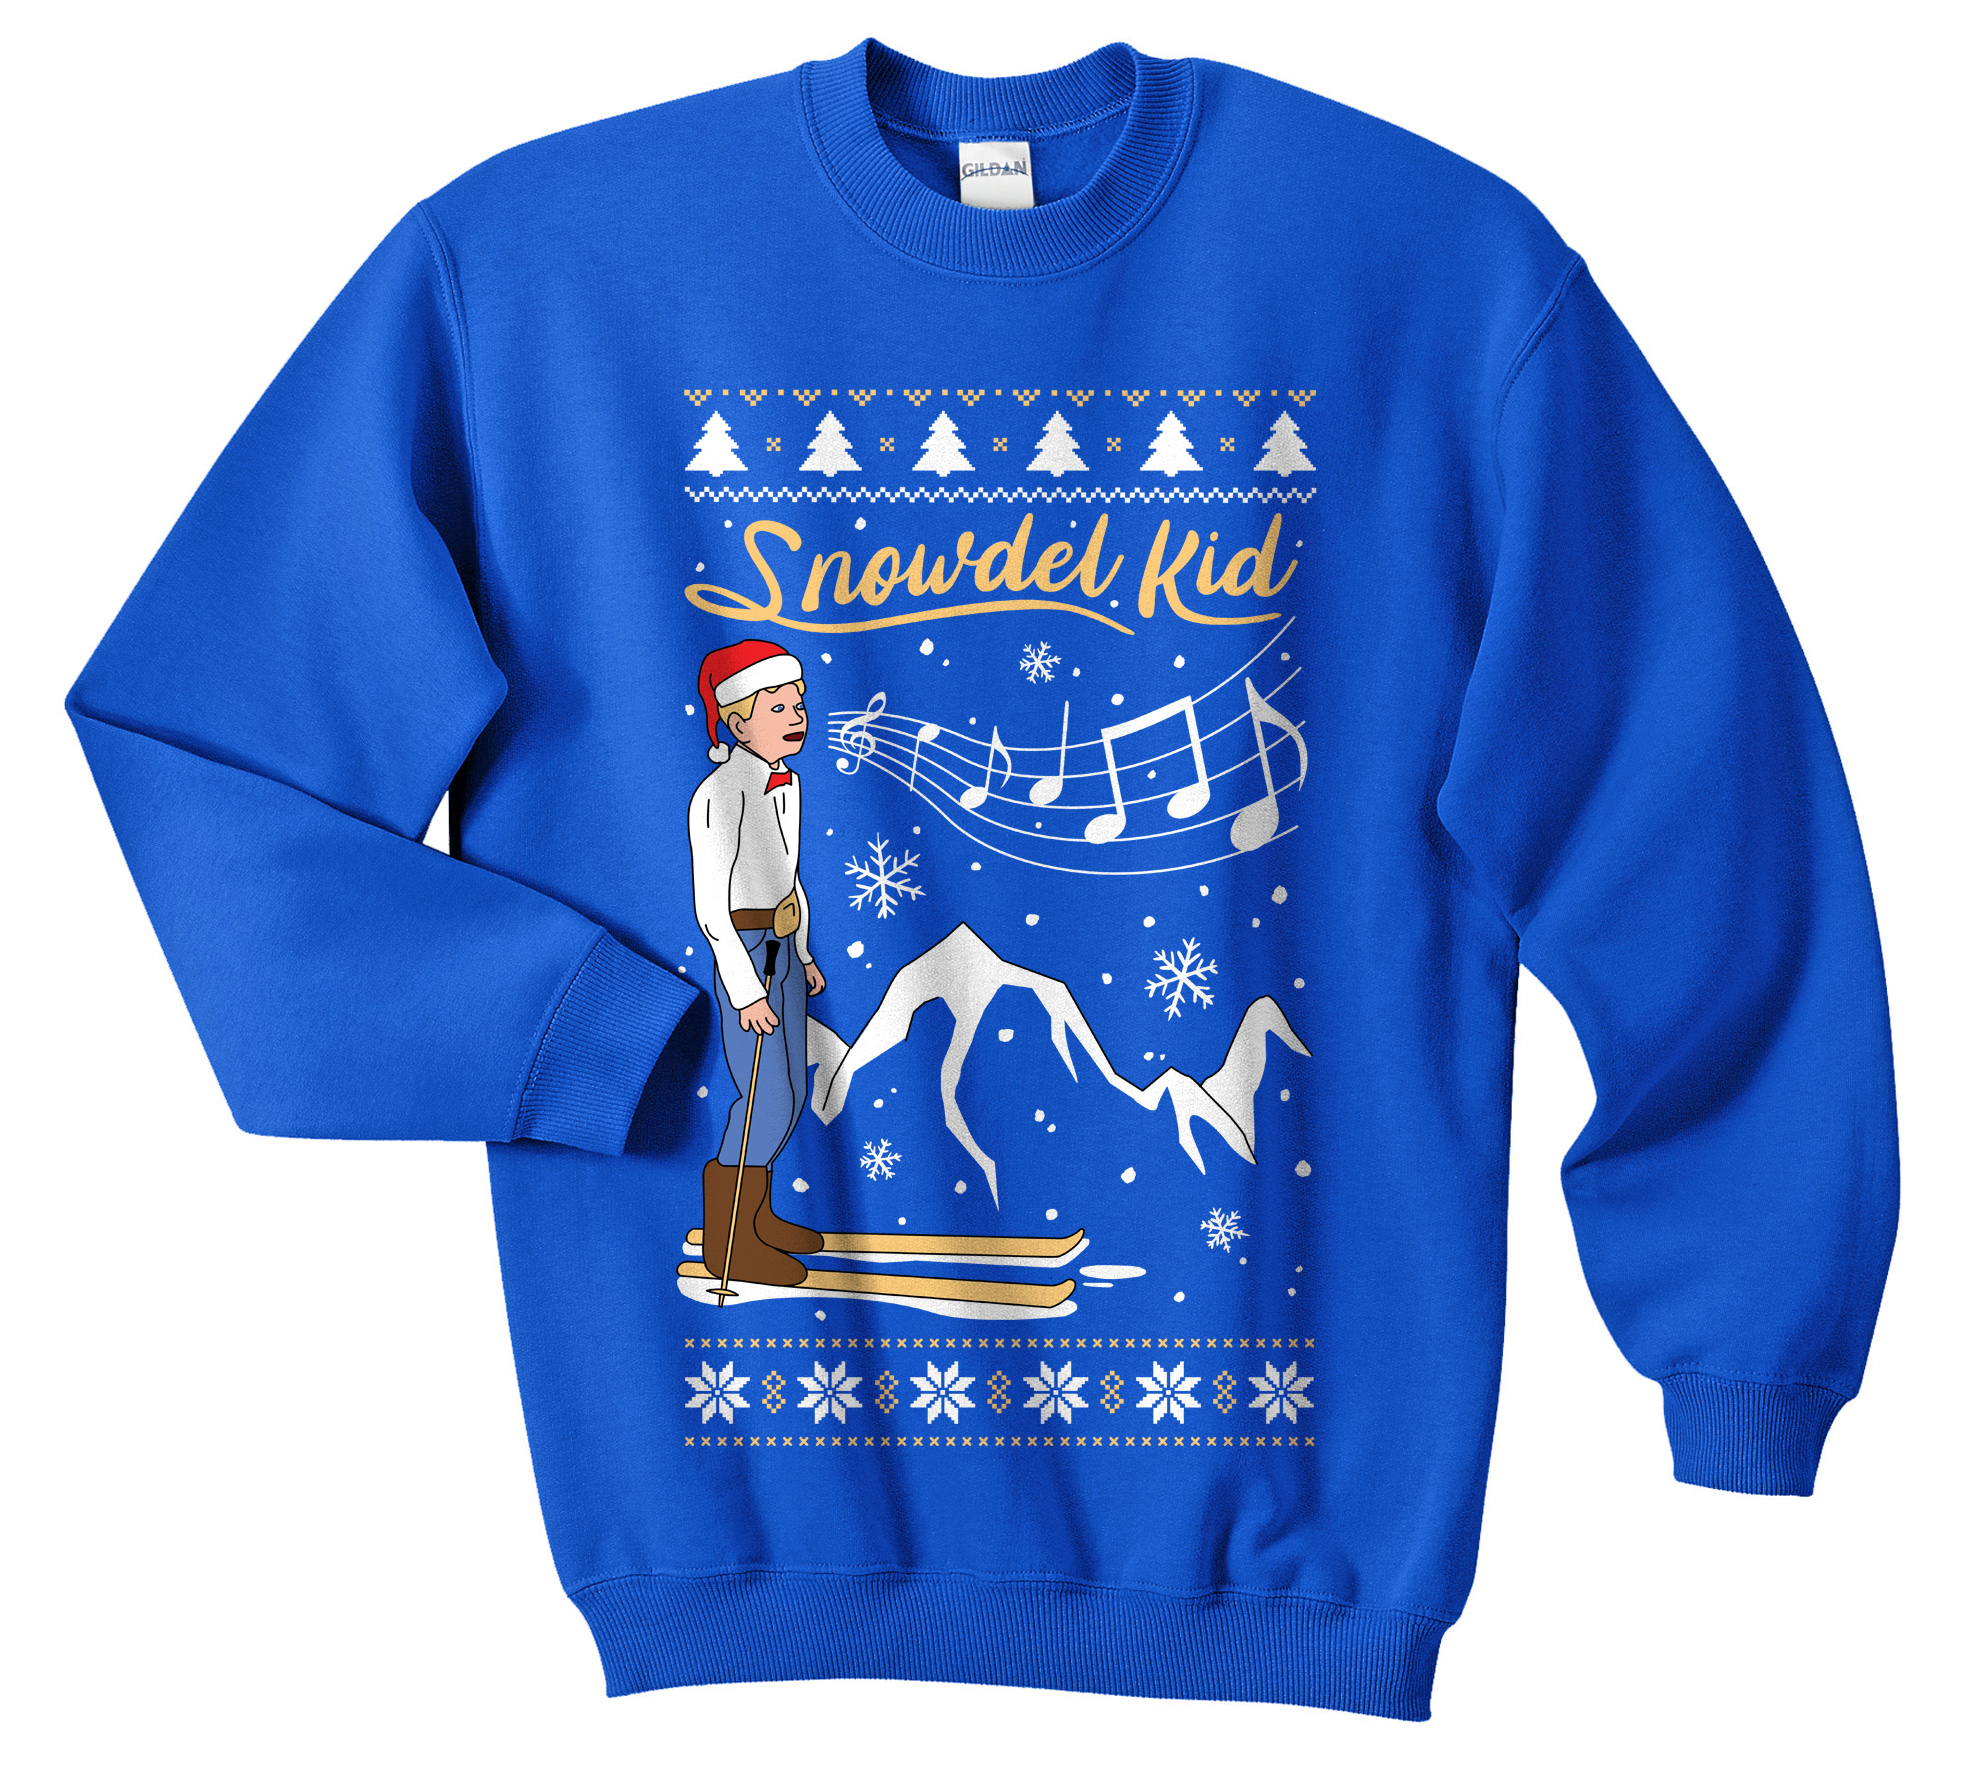 726c4d7dc132d5 Snowdel Kid — UGER | The Christmas Ugly Sweater Store.